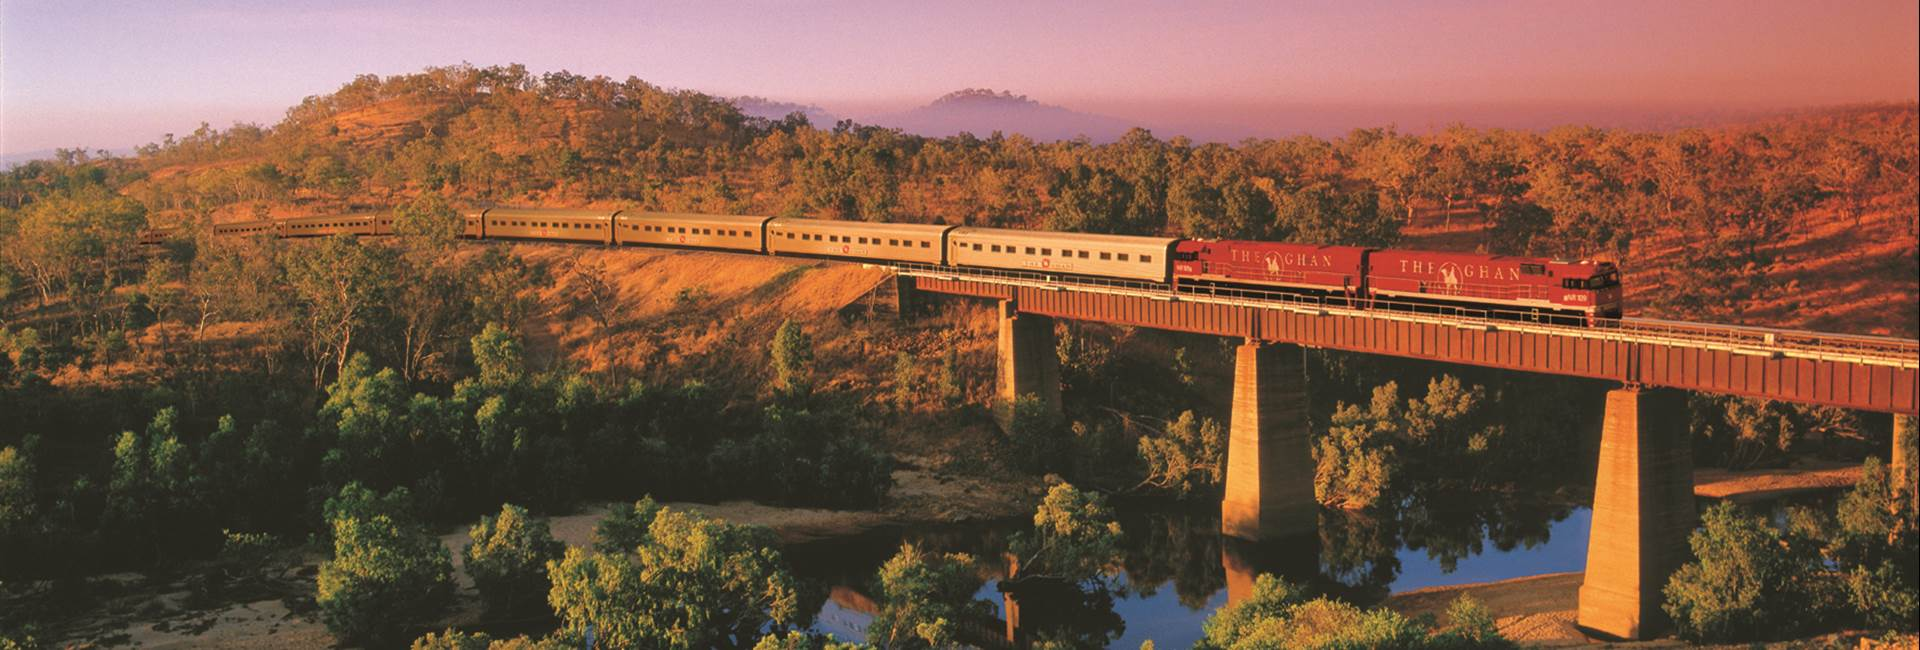 The Ghan - Adelaide-Alice Springs-Darwin